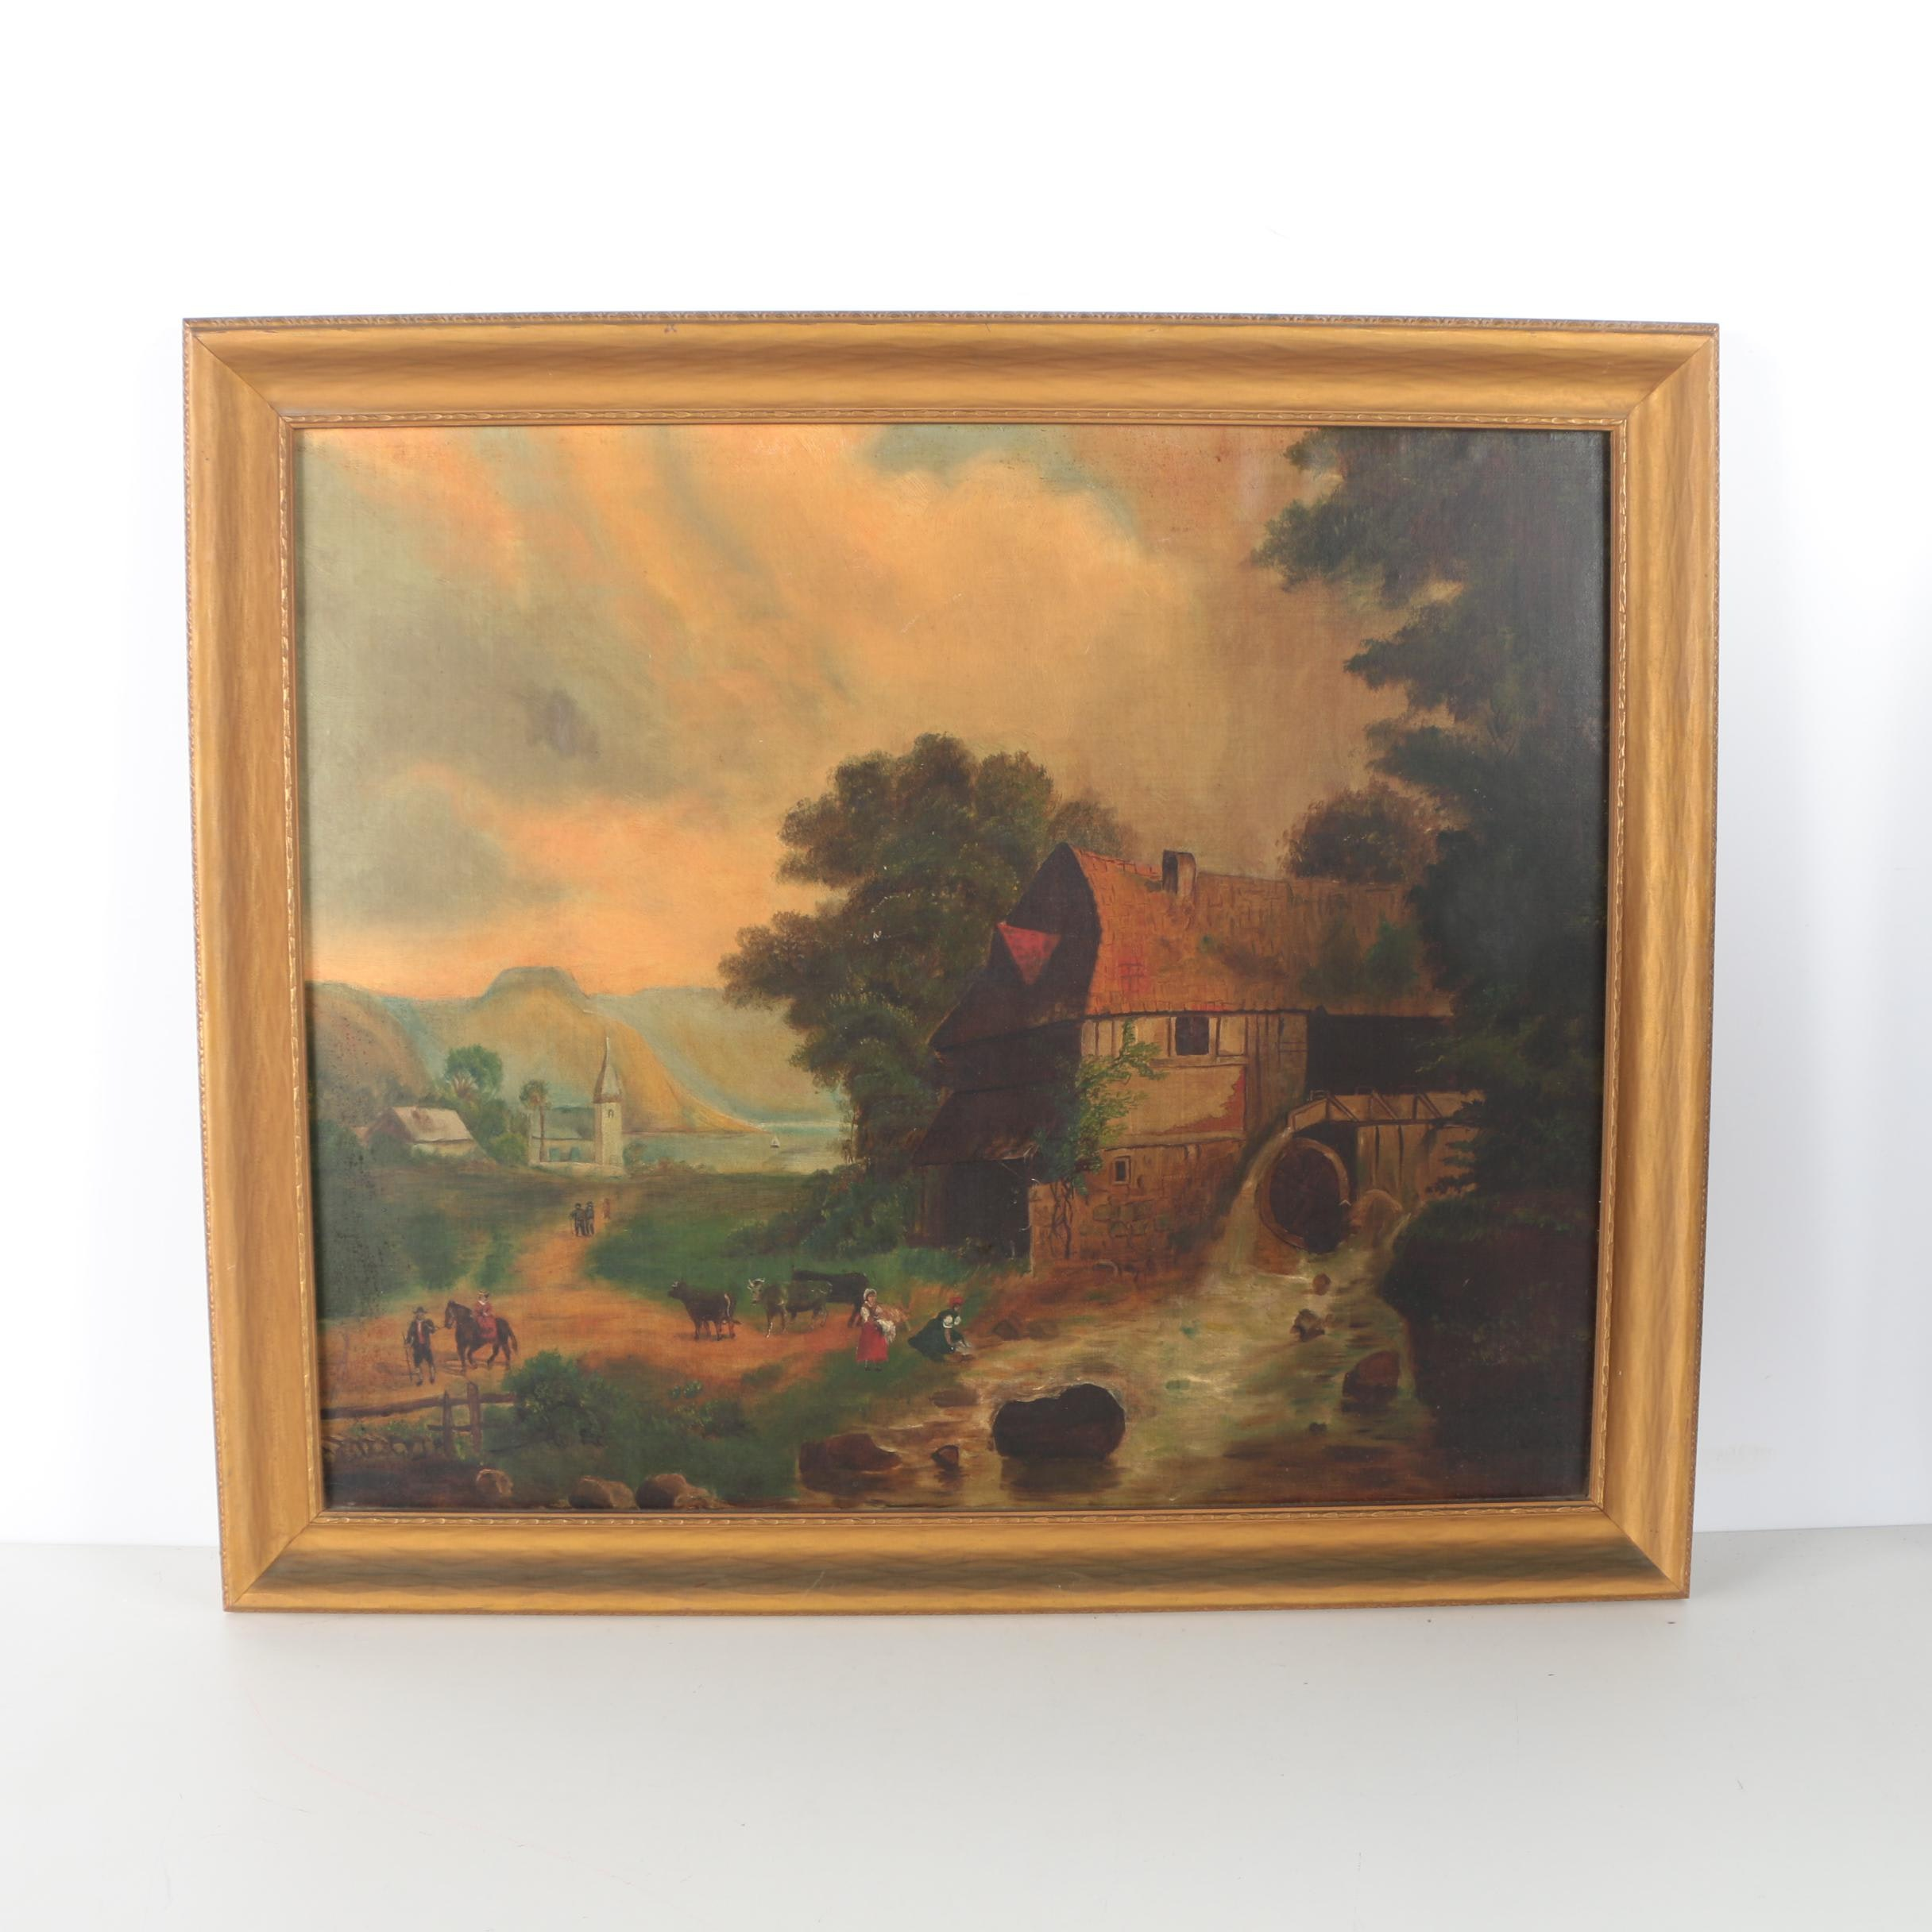 Oil Painting on Canvas Board of an Idyllic Pastoral Scene